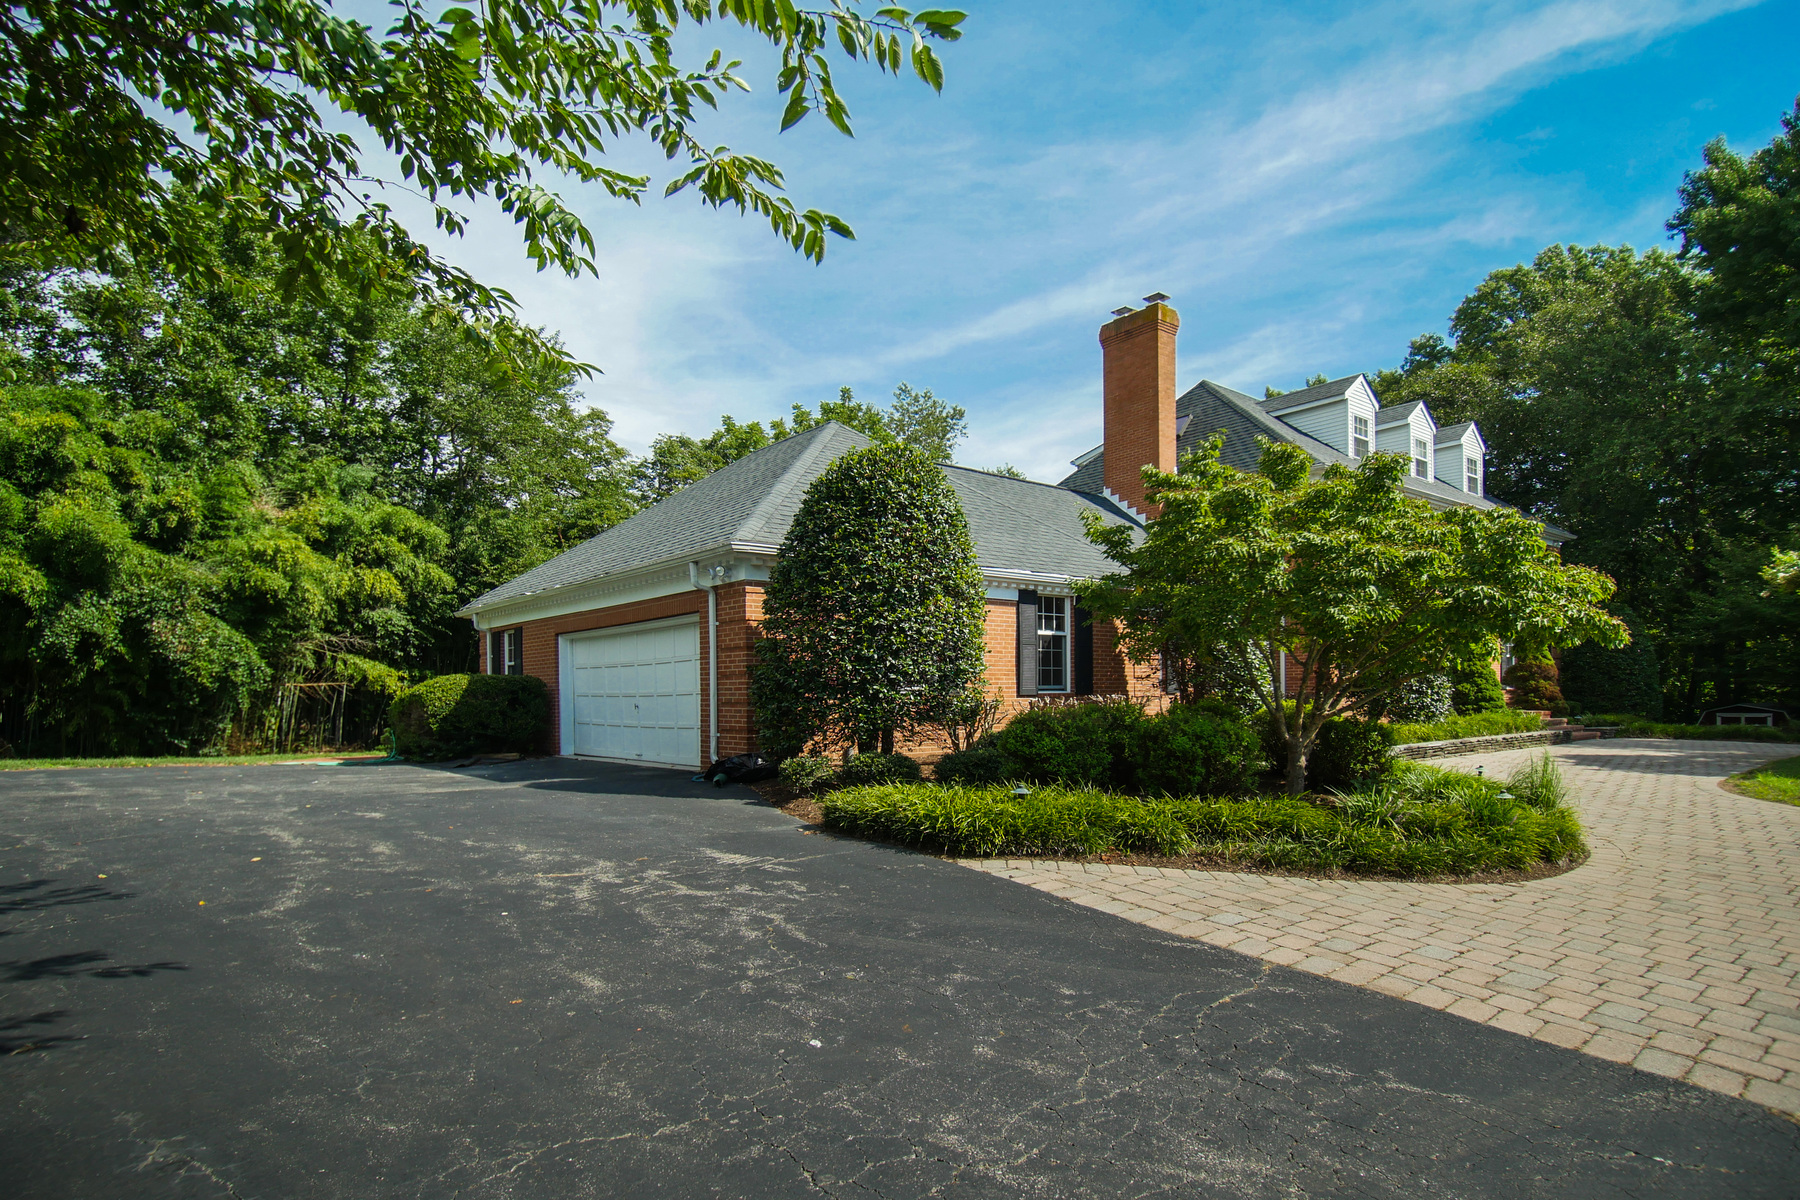 Additional photo for property listing at 576 Stocketts Run Road, Davidsonville 576 Stocketts Run Rd Davidsonville, 馬里蘭州 21035 美國